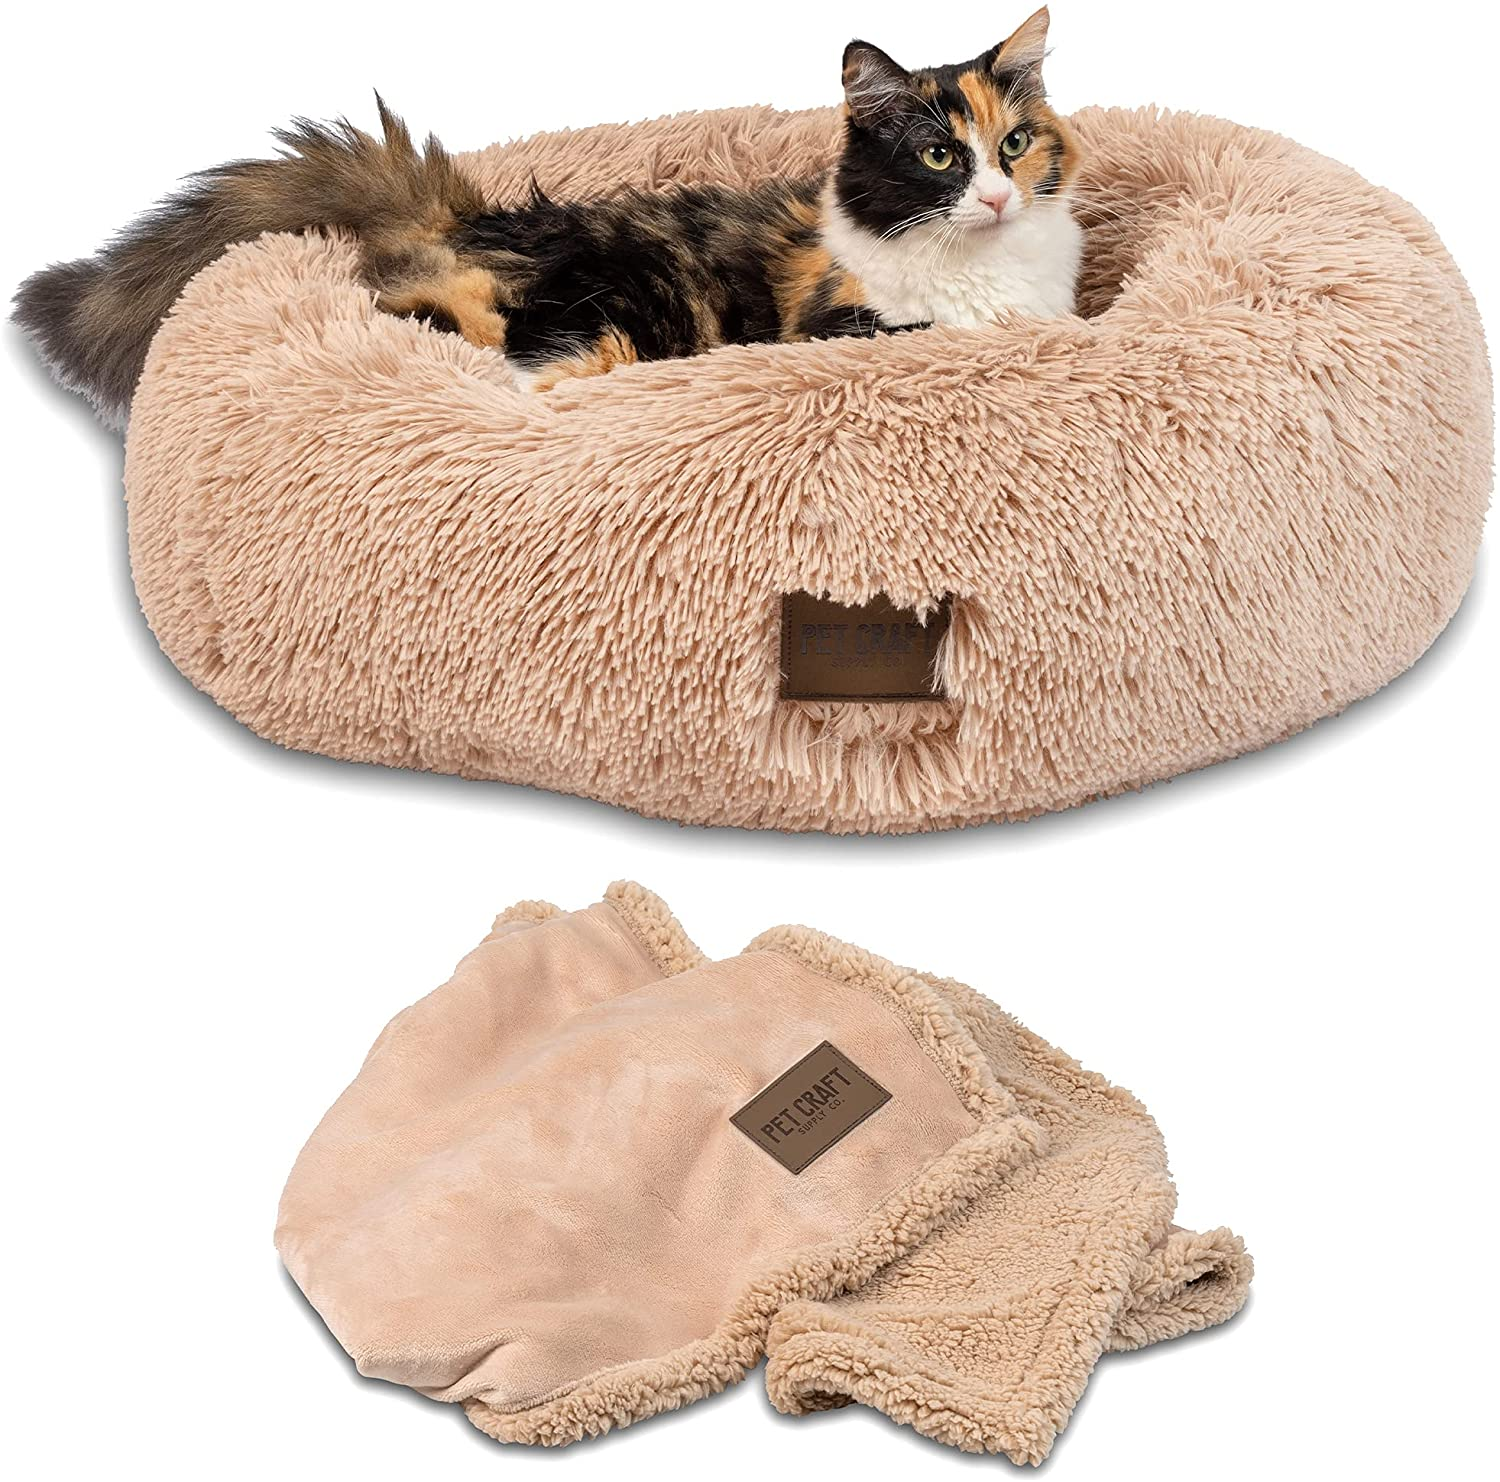 Pet Craft Supply Wellness Calming Dog Bed - Dogs Cat Small Las Vegas Don't miss the campaign Mall B for